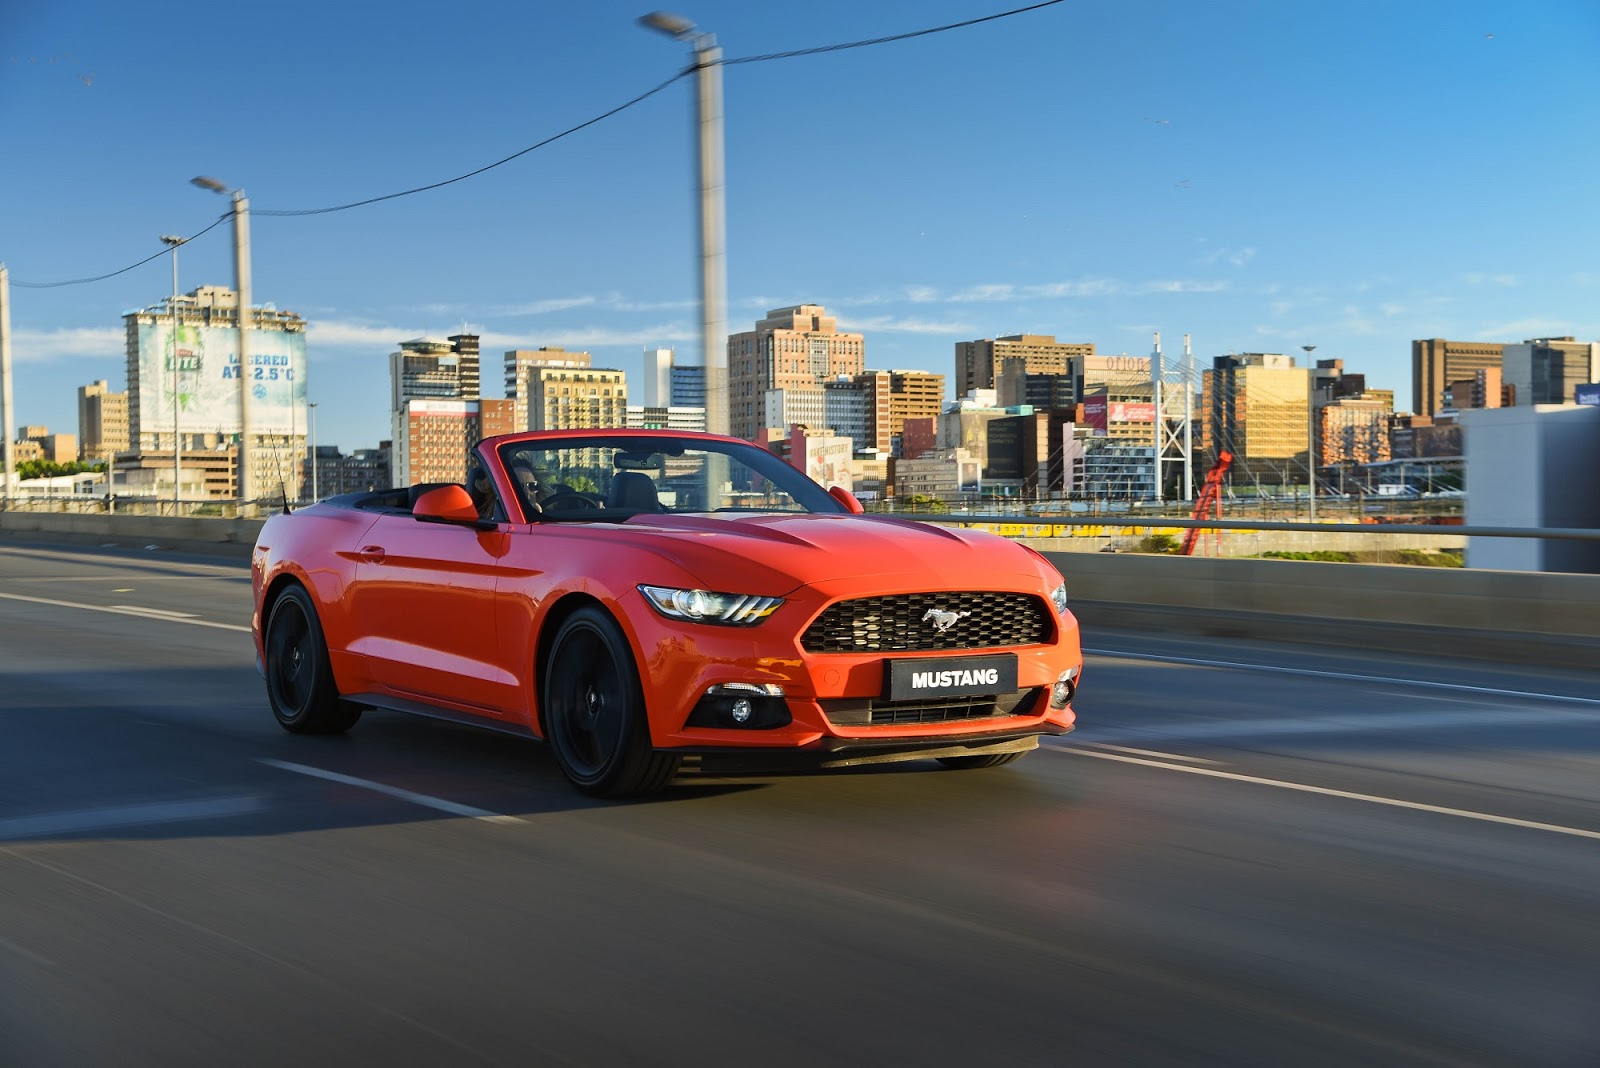 Mustang Johannesburg South2BAfrica Η Ford Mustang πρώτη σε ταξινομήσεις στην κατηγορία sports coupe σε όλο τον κόσμο Bestseller, COUPE, Ford, Ford Mustang, Muscle cars